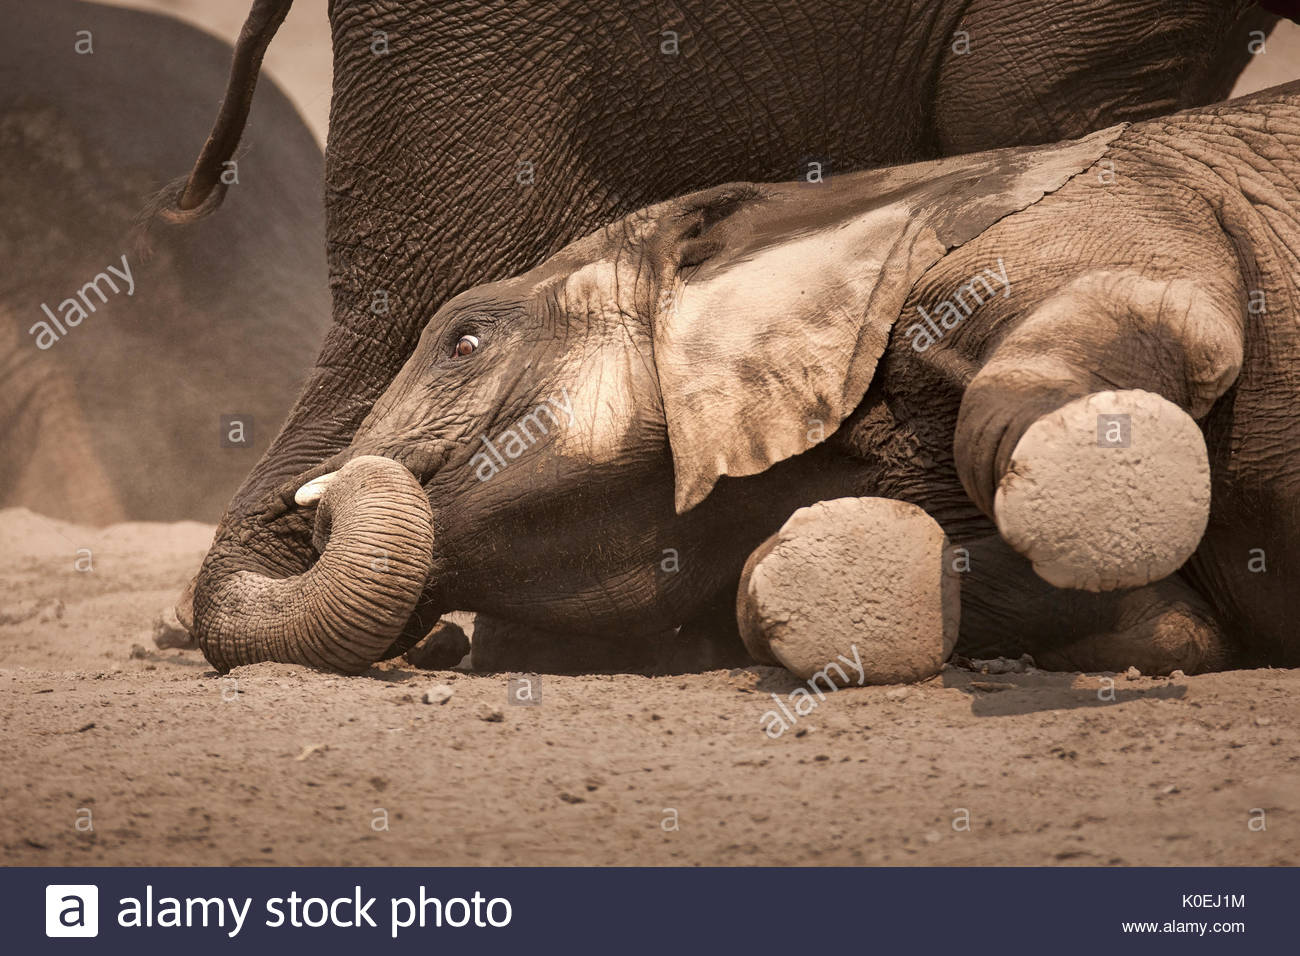 Young Elephant calf lying down between the herd on dusty desert sand in Etosha National Park - Stock Image